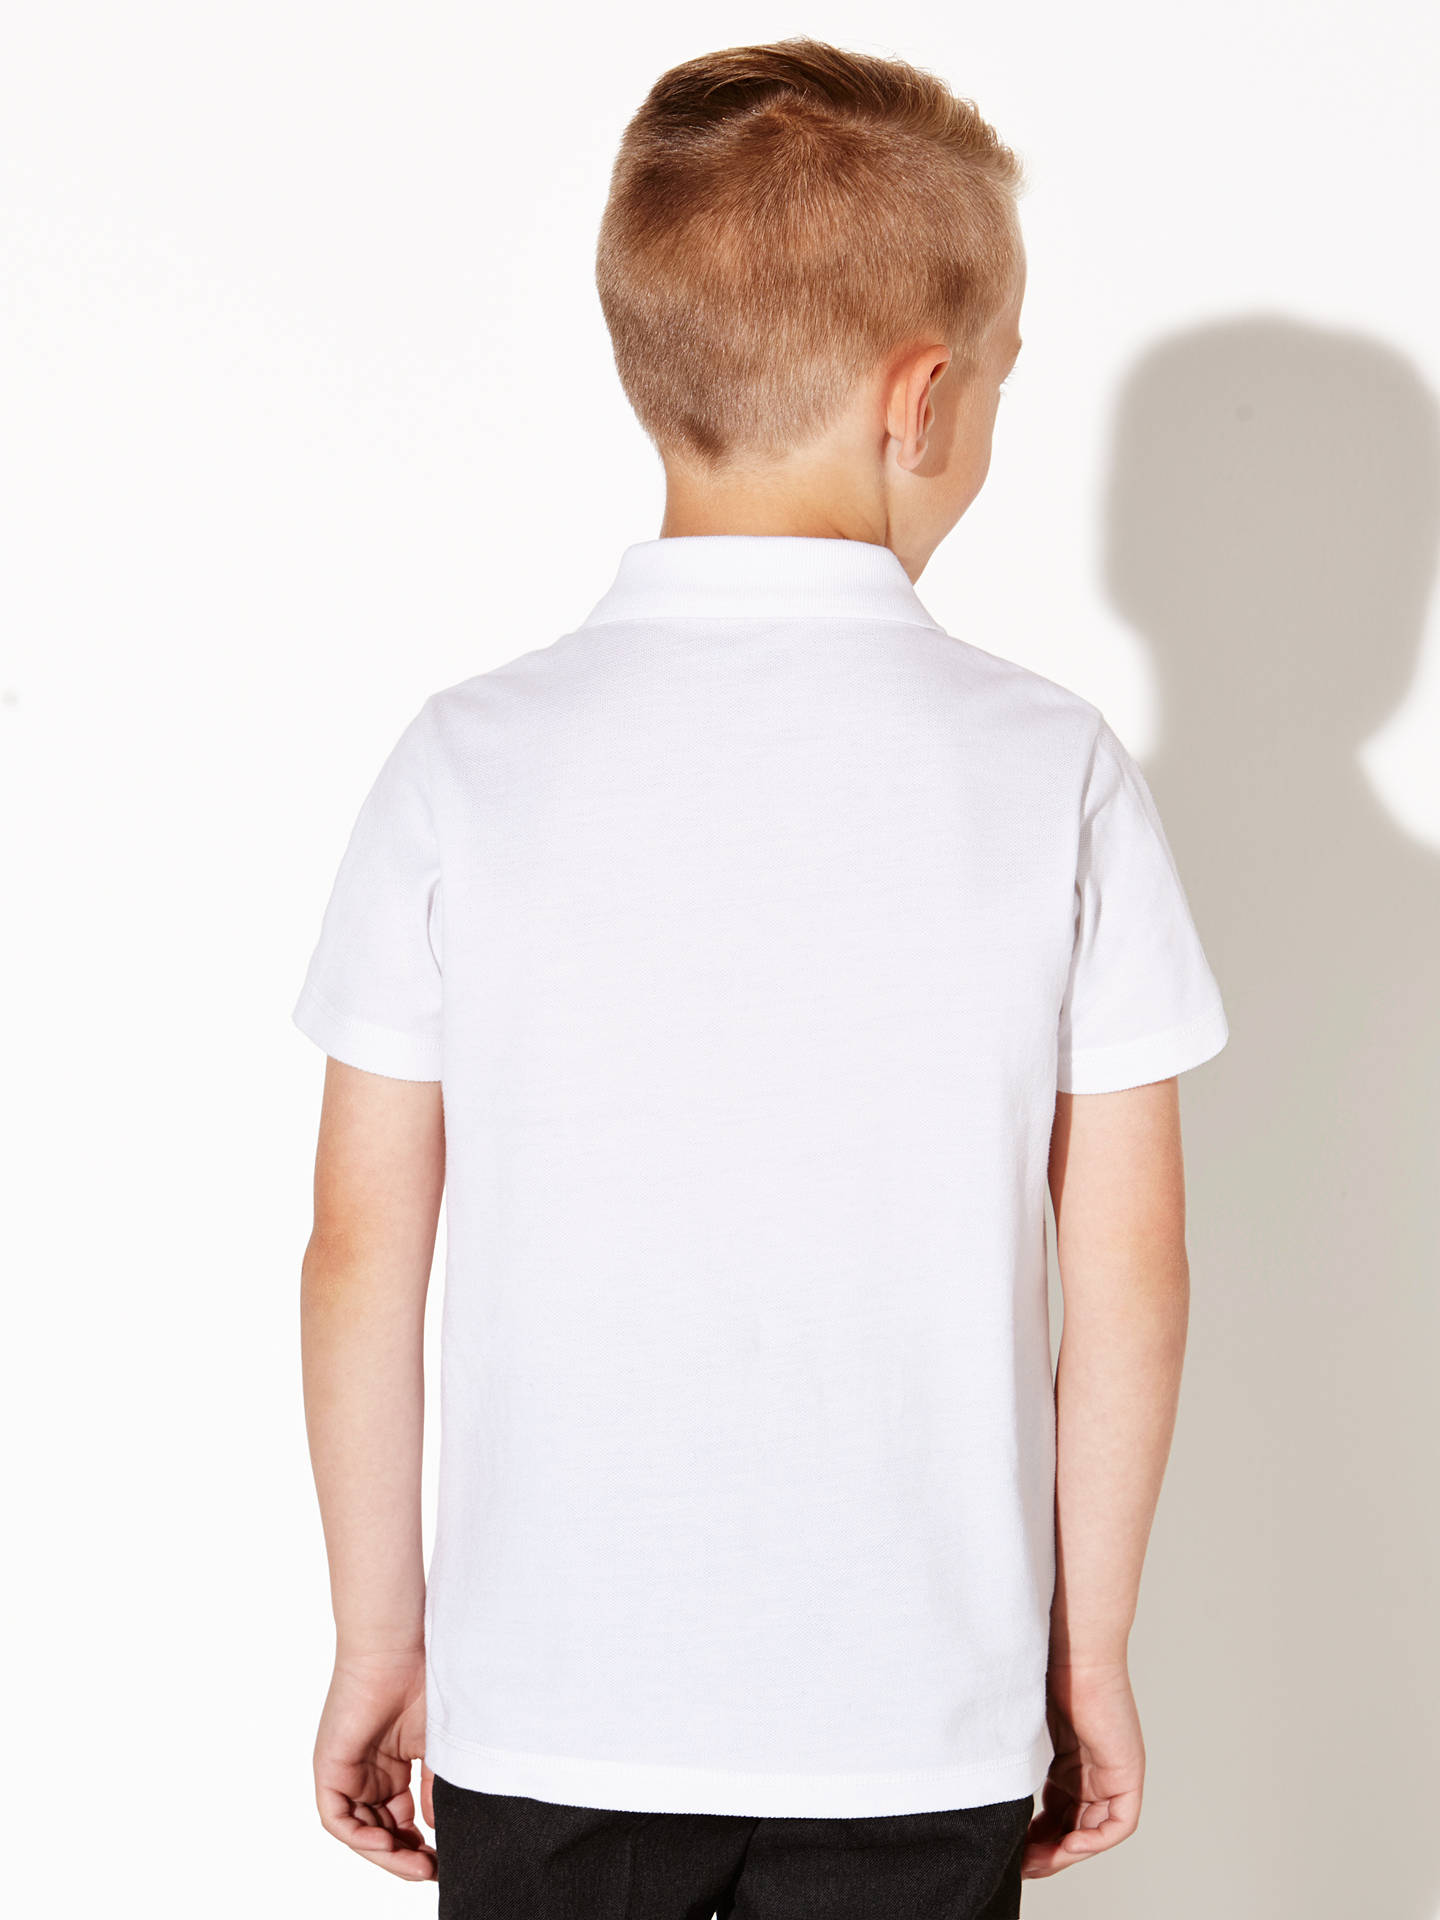 BuyJohn Lewis & Partners The Basics 100% Pure Cotton Polo Shirt, Pack of 2, White, 3 years Online at johnlewis.com